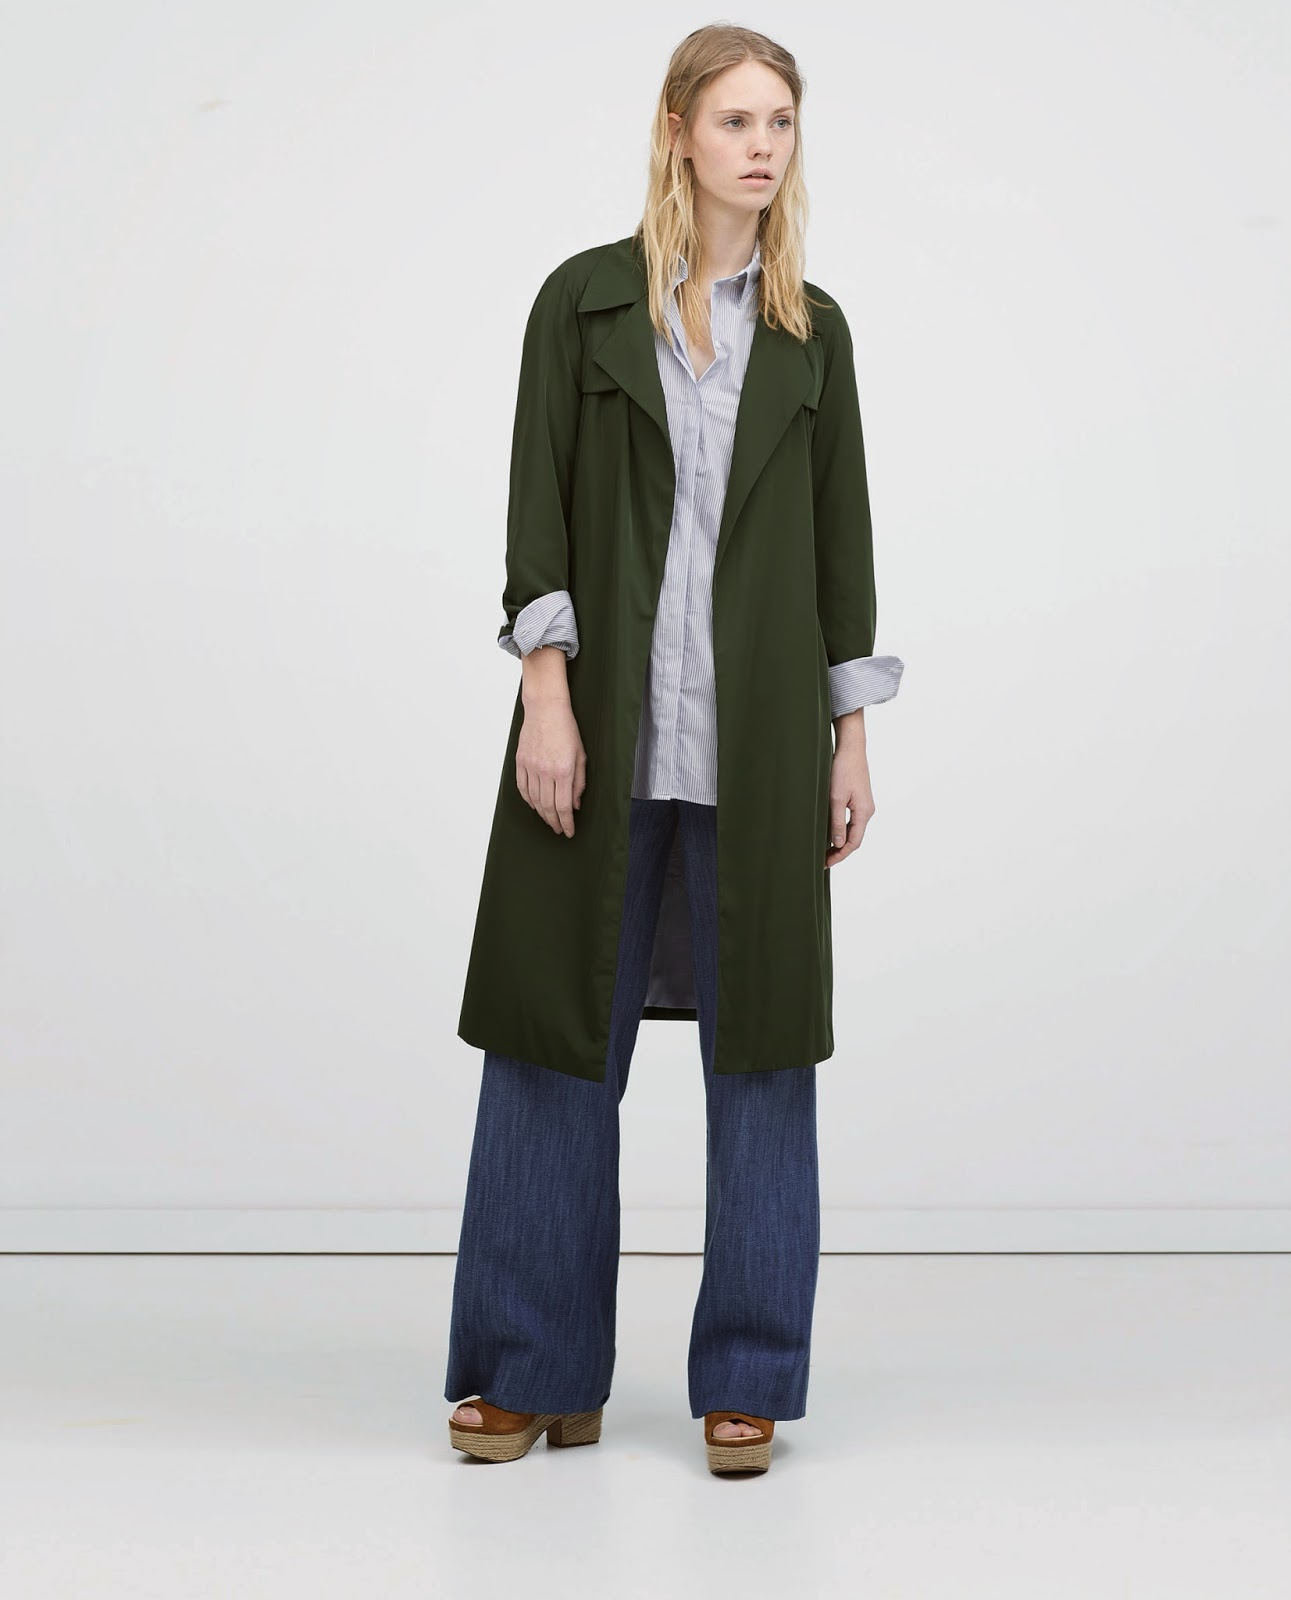 zara green coat,